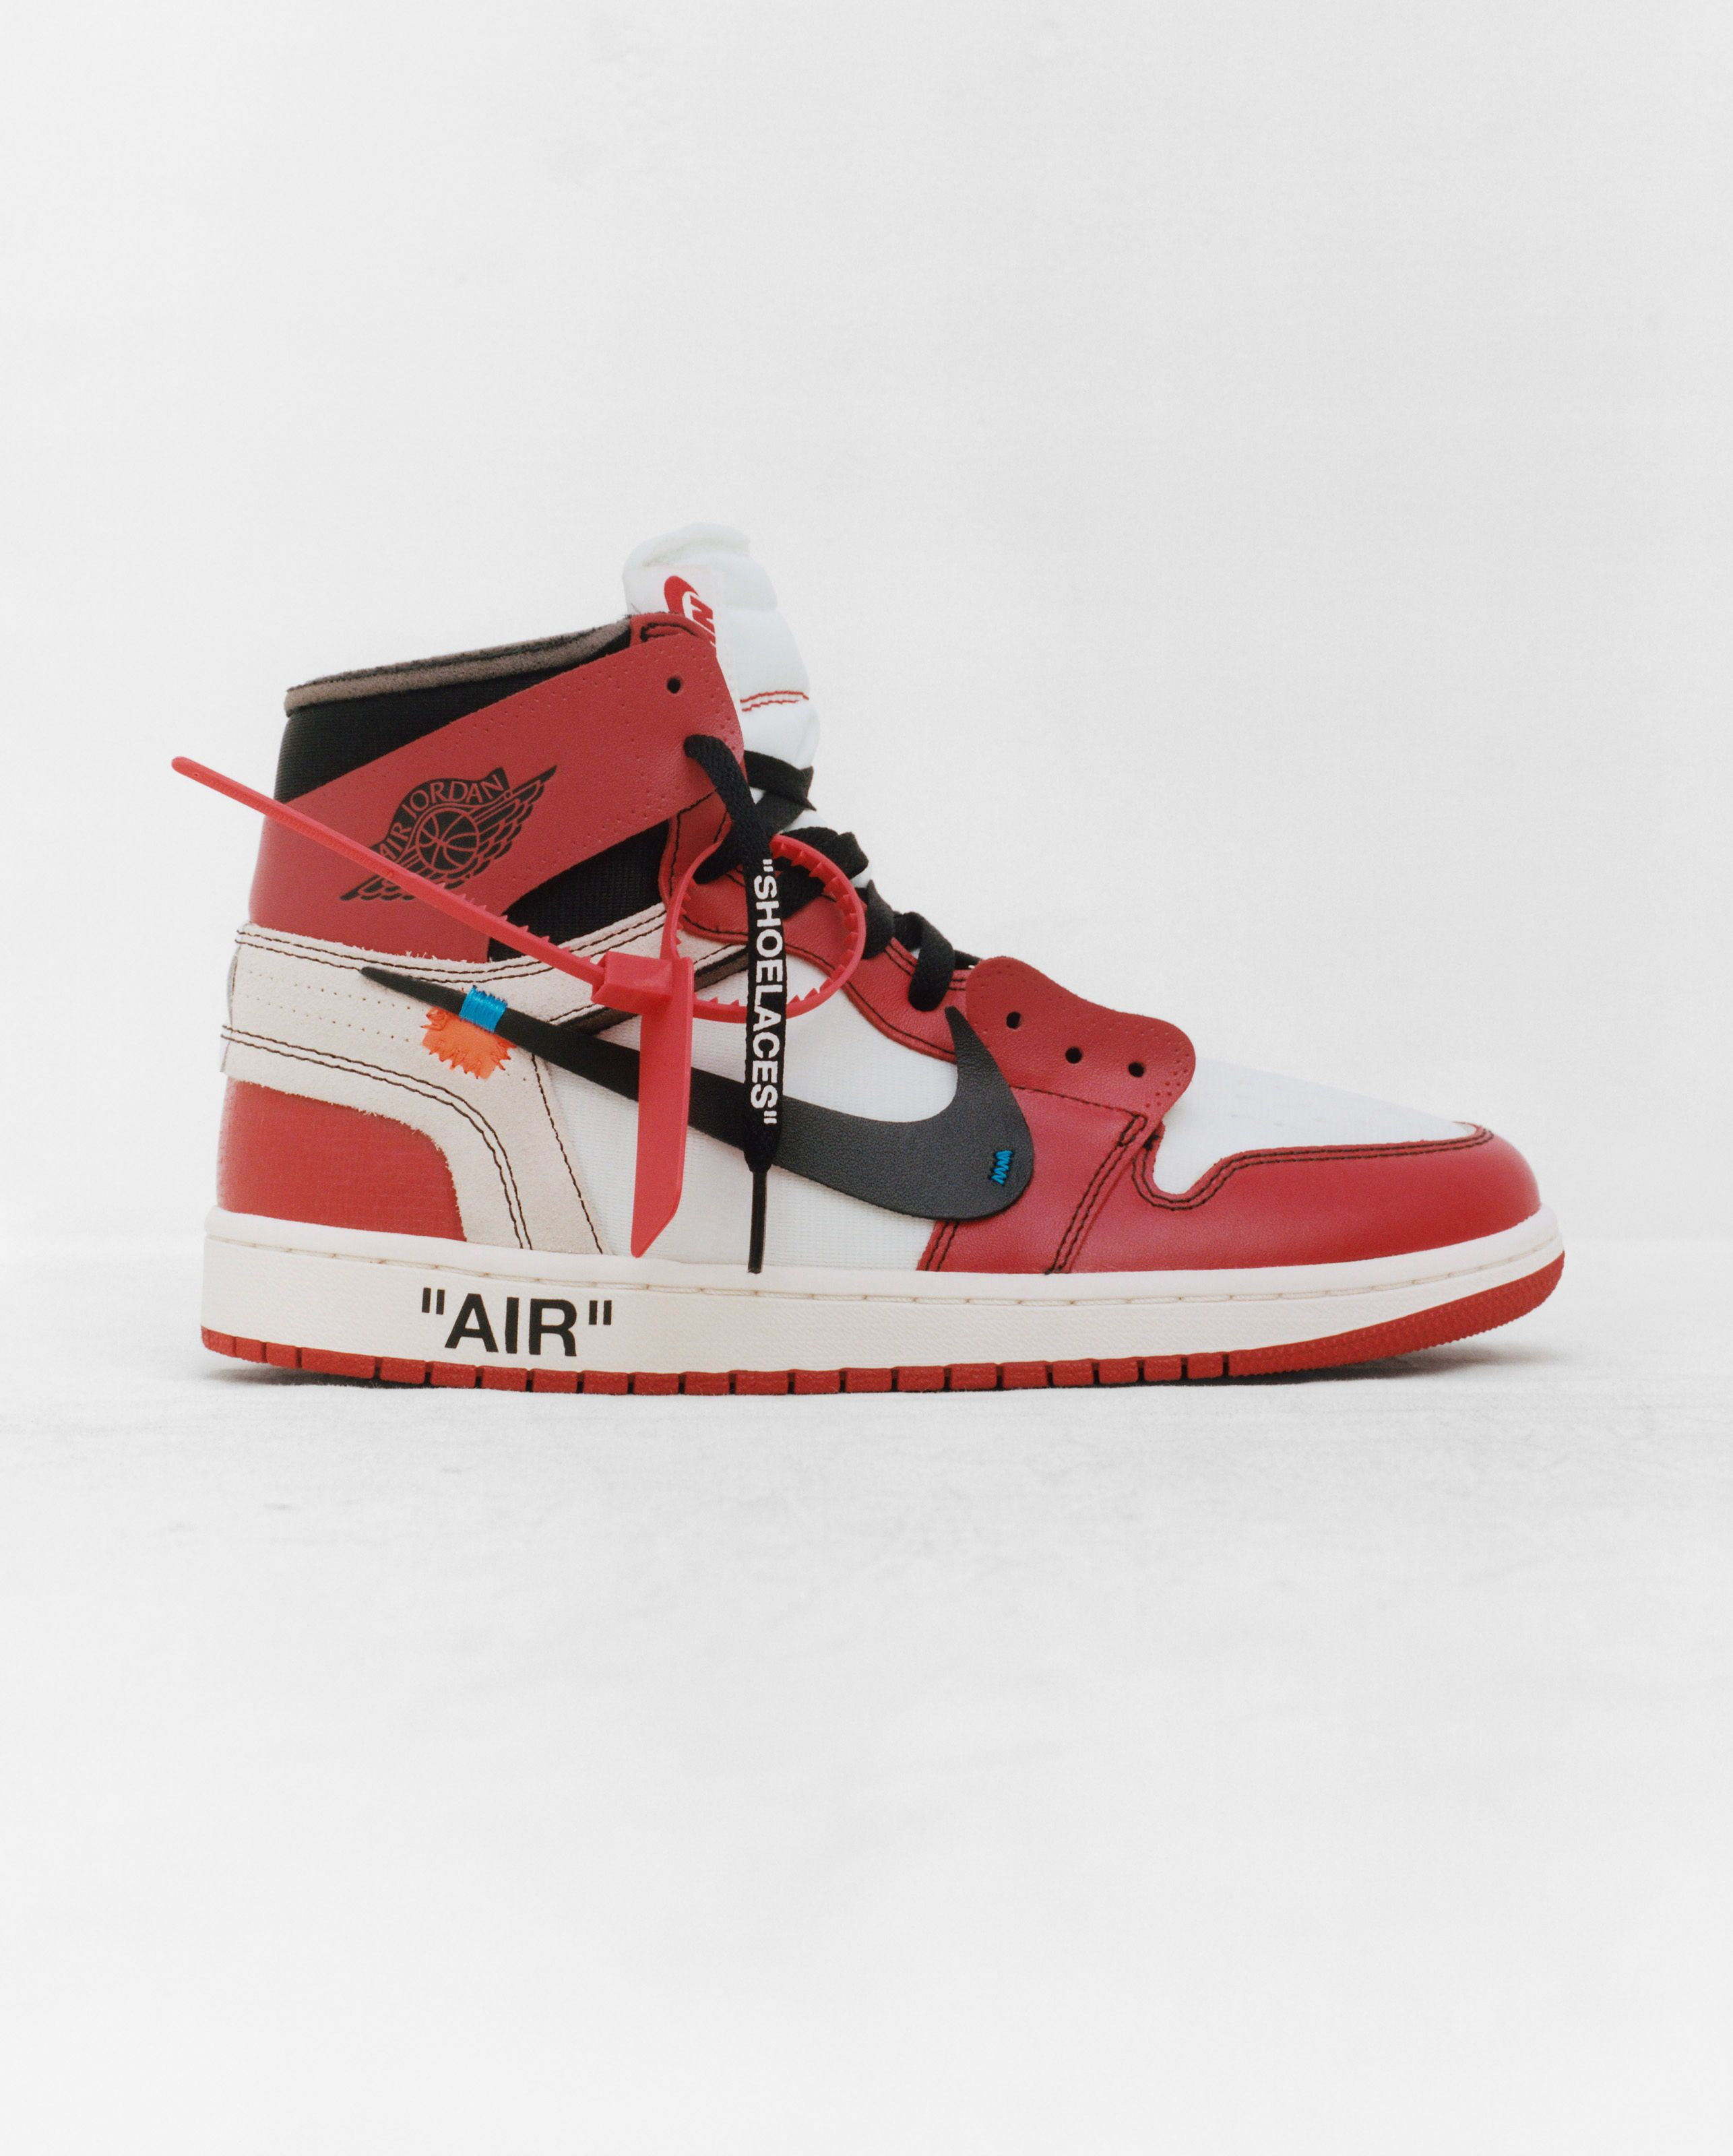 OFF WHITE by Virgil Abloh x Nike The 10: Air Jordan 1